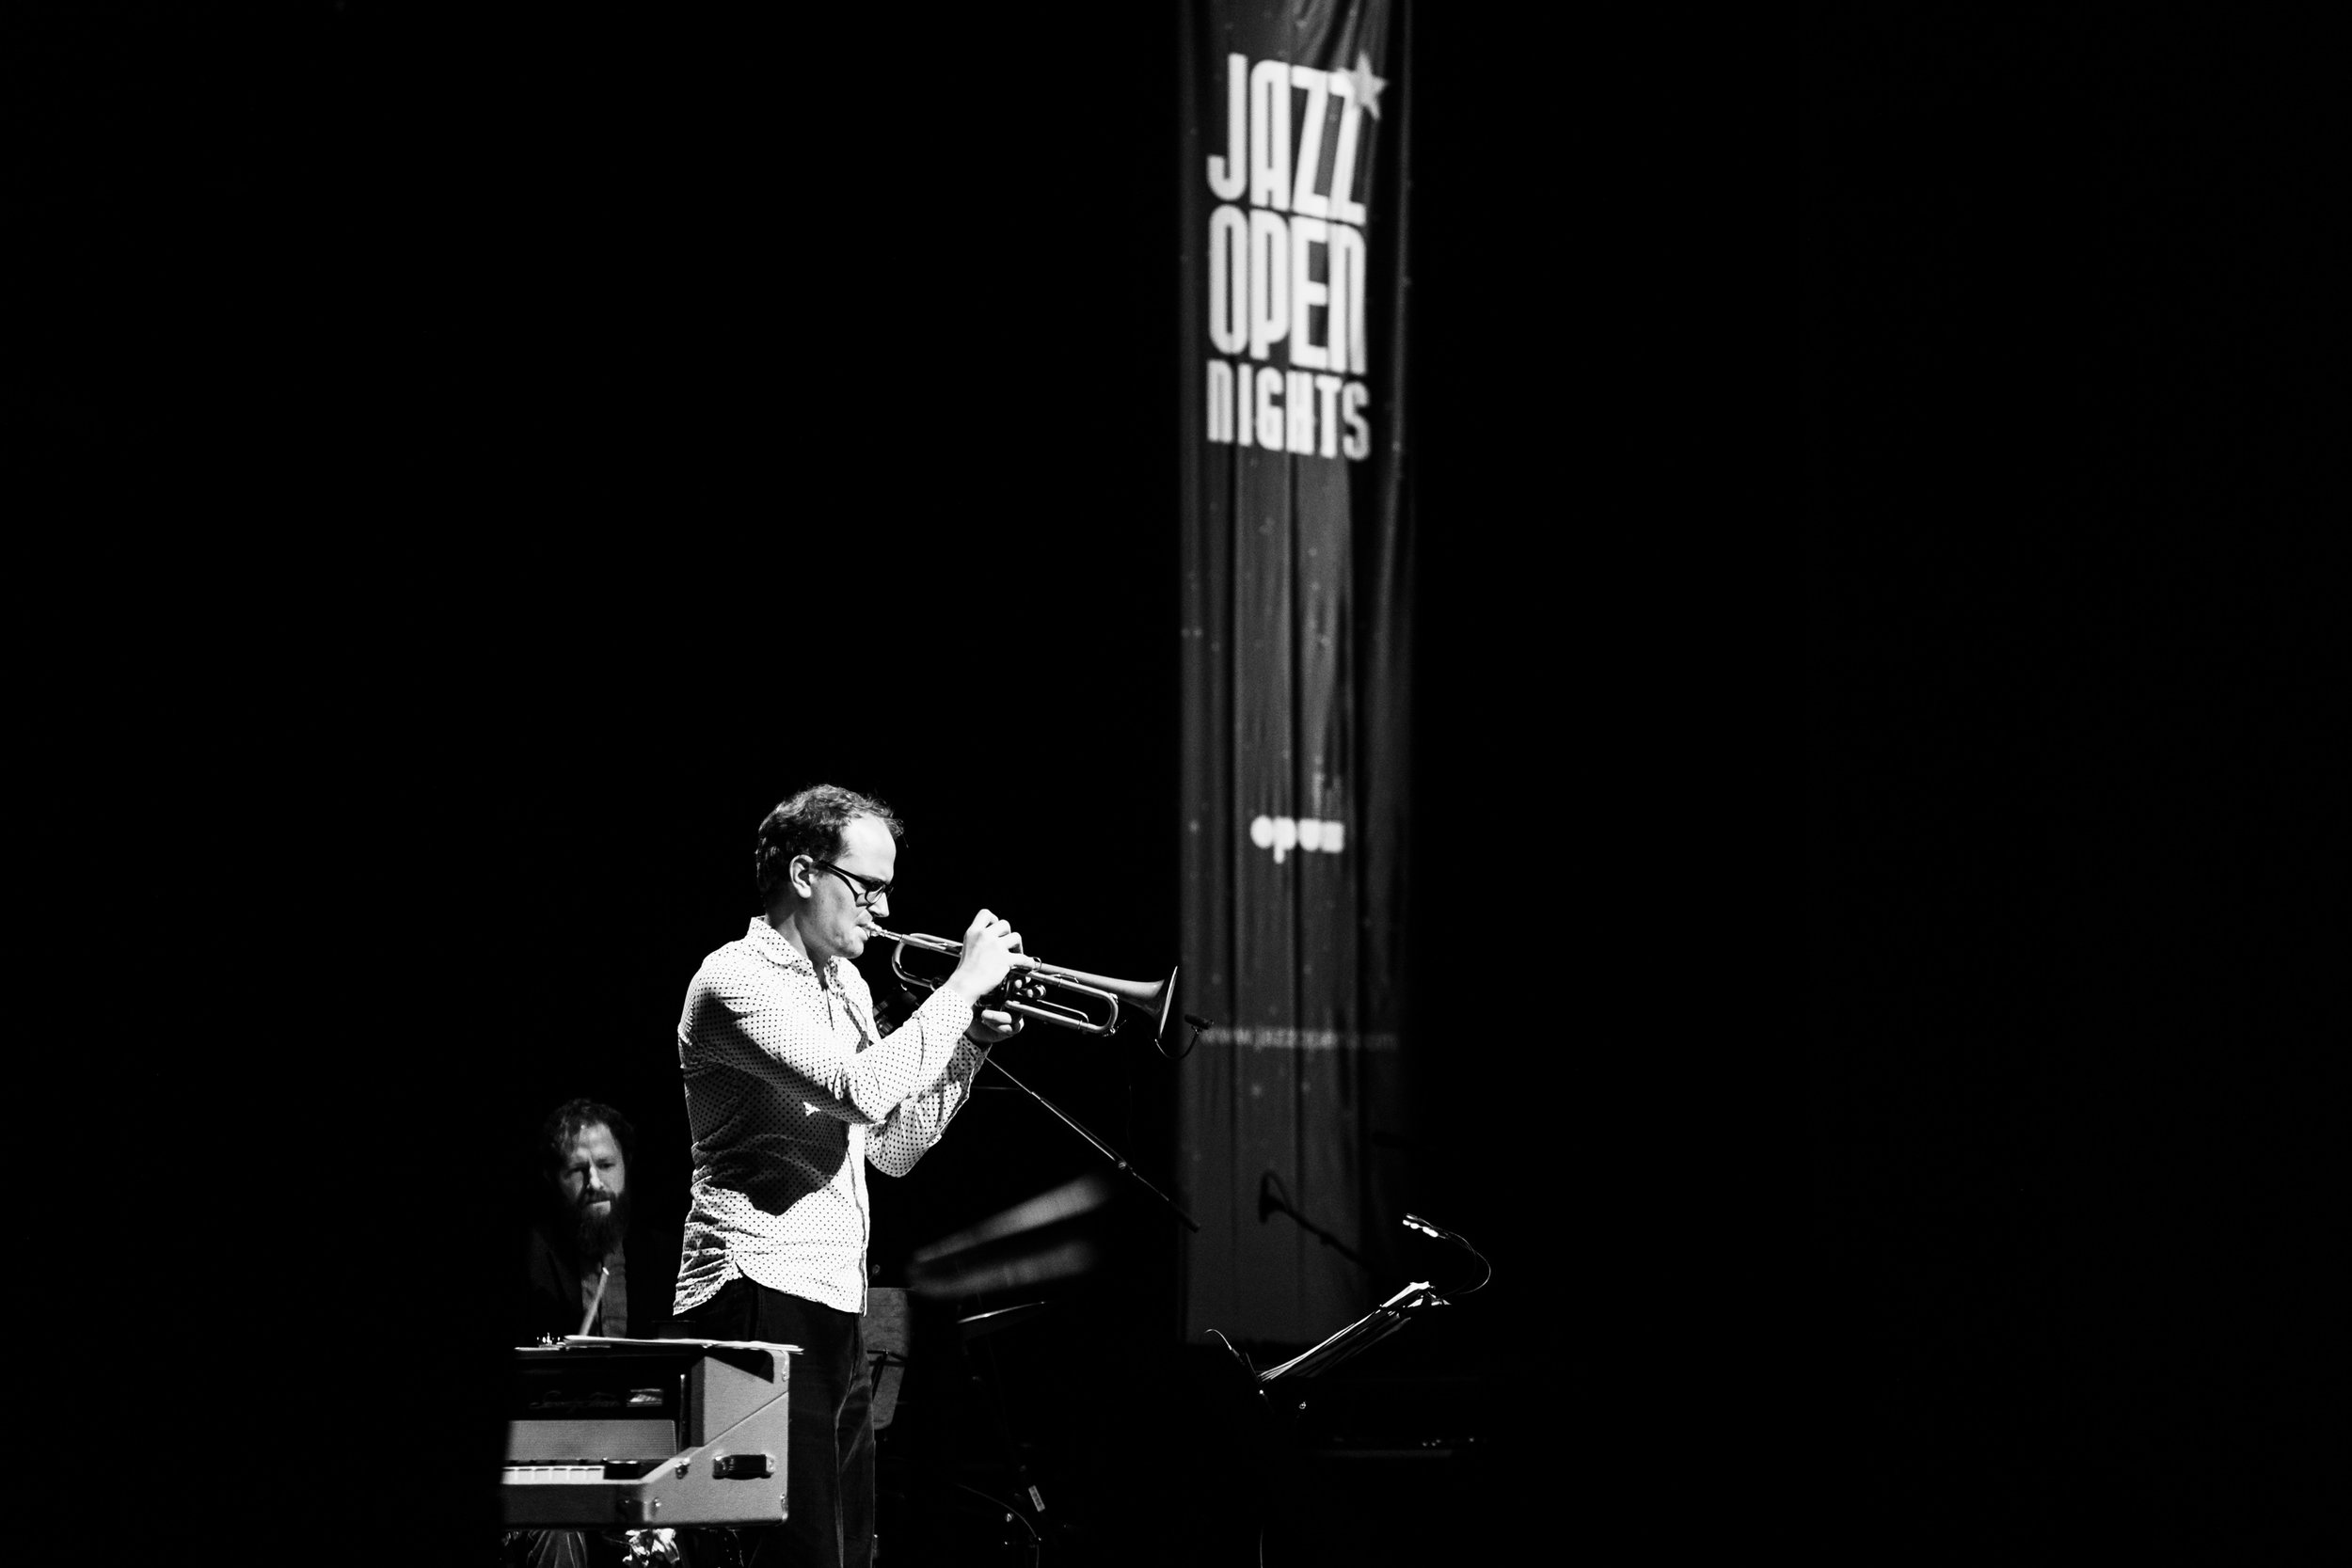 20171102_jazzopen-night-10.jpg